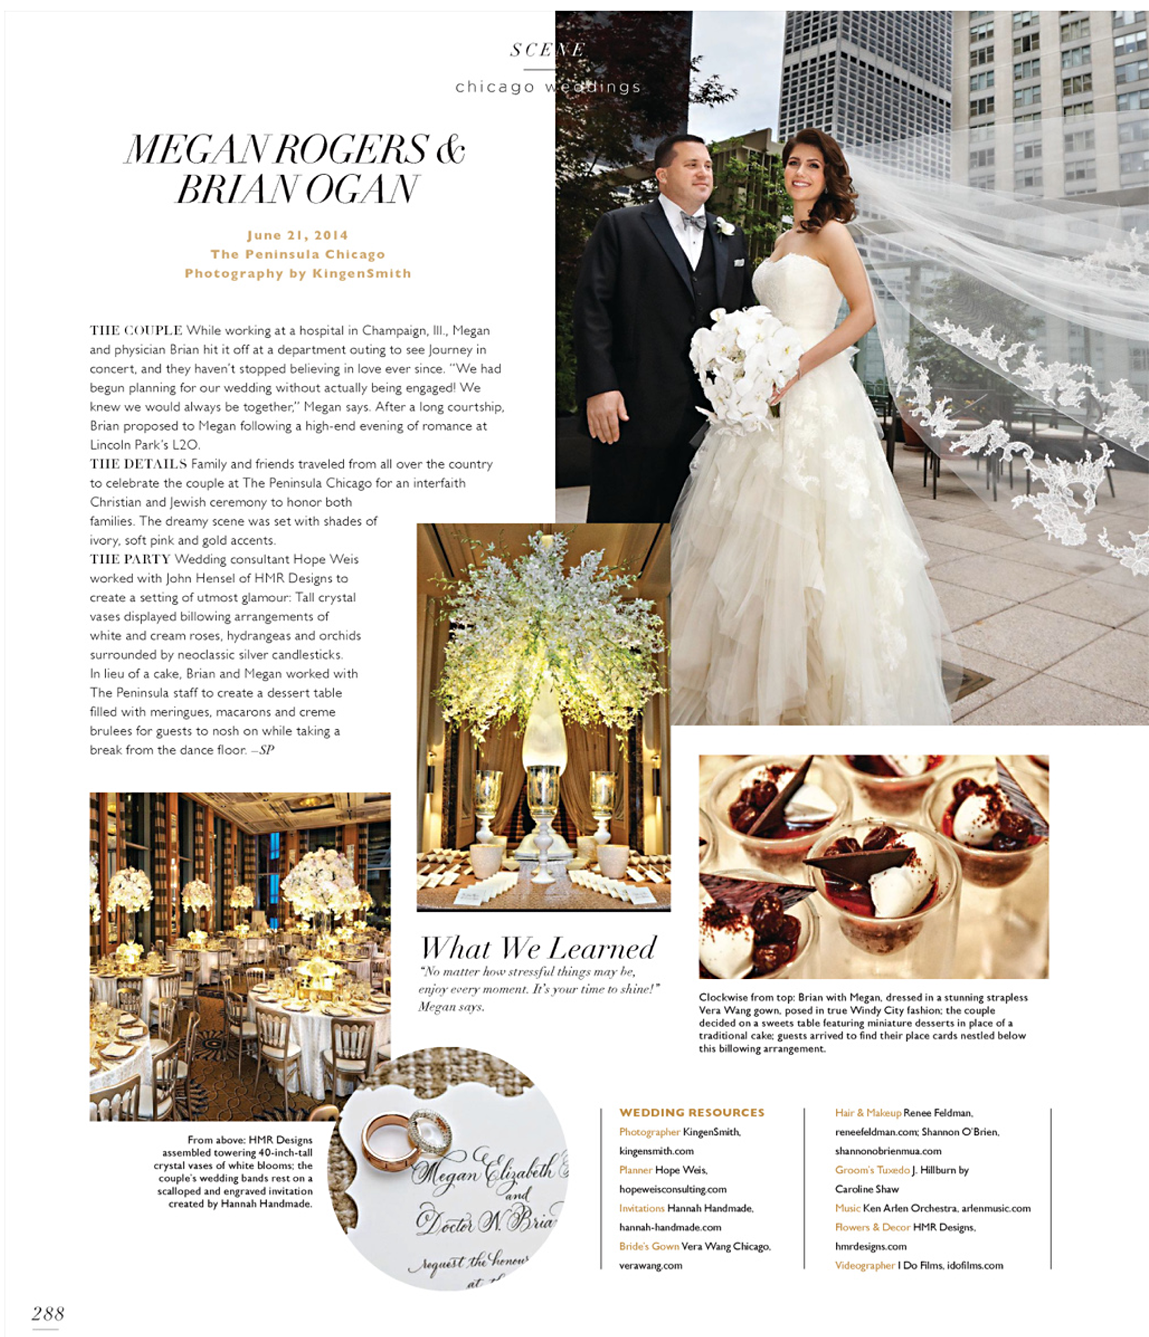 Megan and Brian - Modern Luxury Brides Chicago July 2015